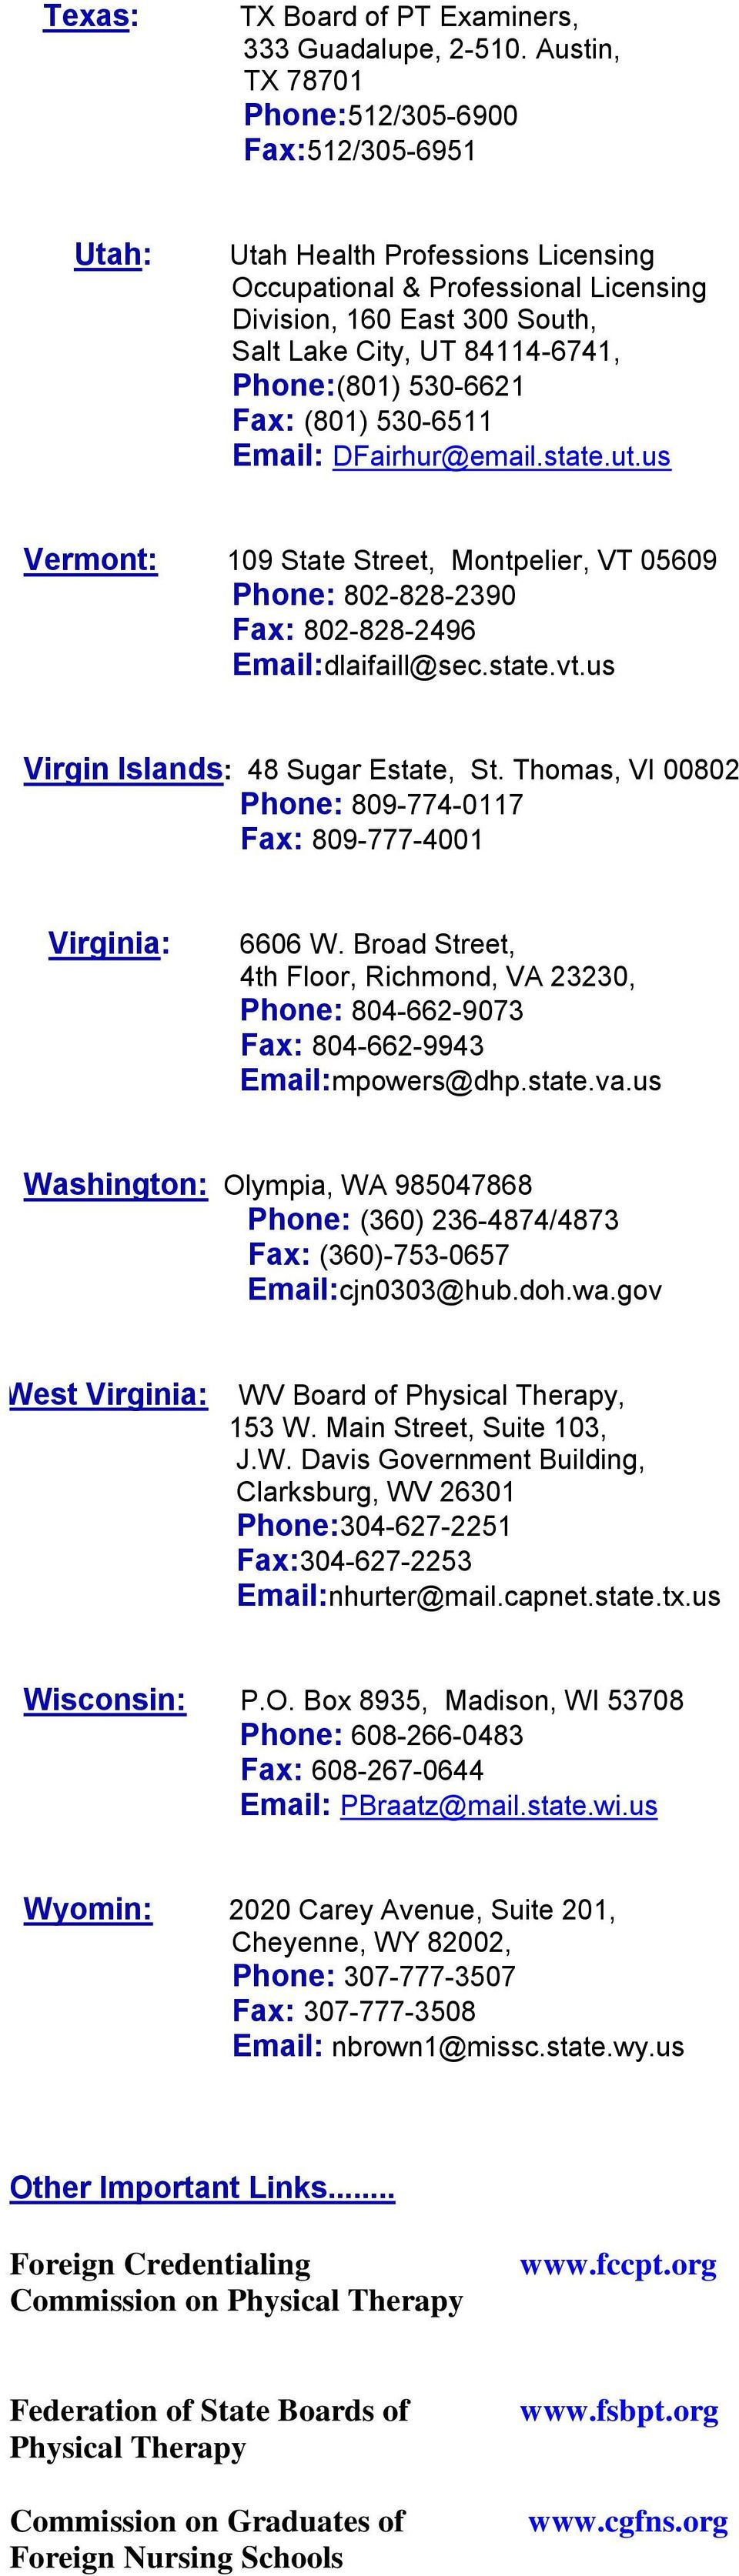 Phone:(801) 530-6621 Fax: (801) 530-6511 Email: DFairhur@email.state.ut.us Vermont: 109 State Street, Montpelier, VT 05609 Phone: 802-828-2390 Fax: 802-828-2496 Email:dlaifaill@sec.state.vt.